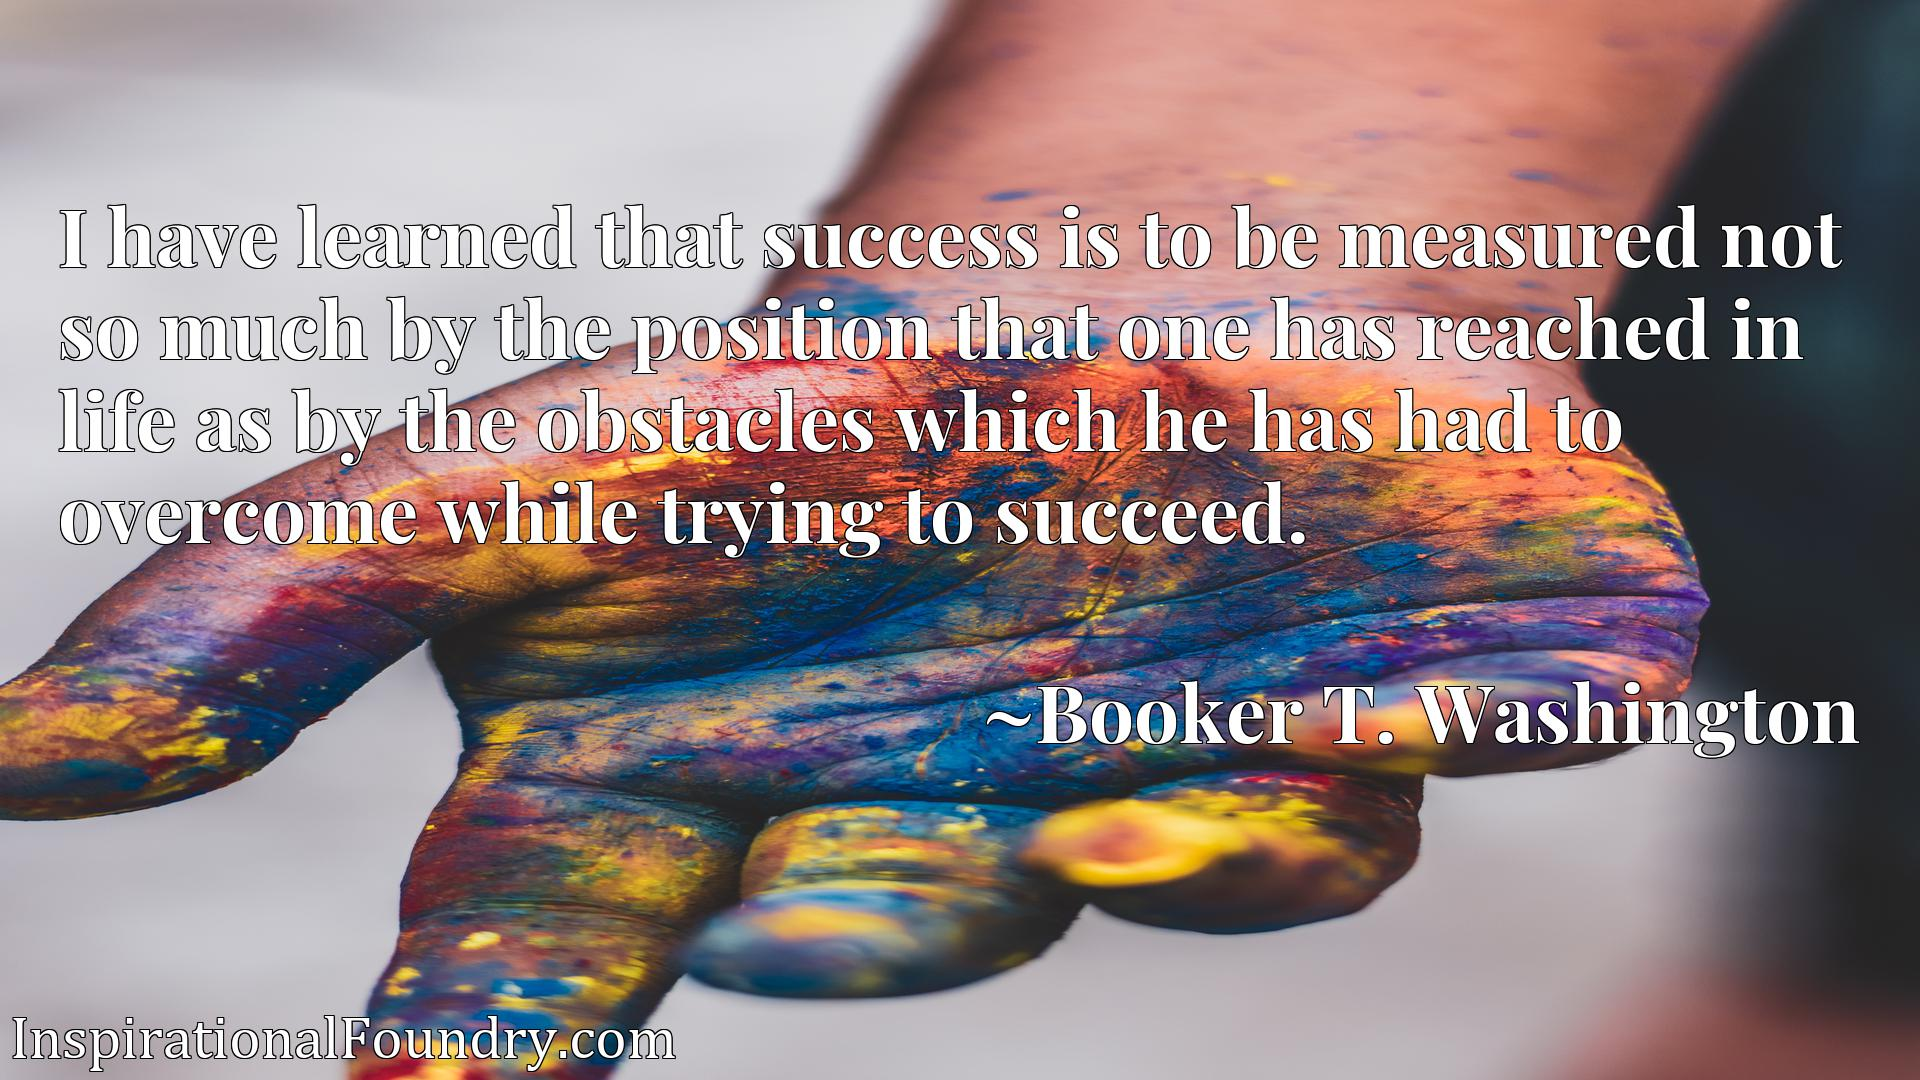 Quote Picture :I have learned that success is to be measured not so much by the position that one has reached in life as by the obstacles which he has had to overcome while trying to succeed.